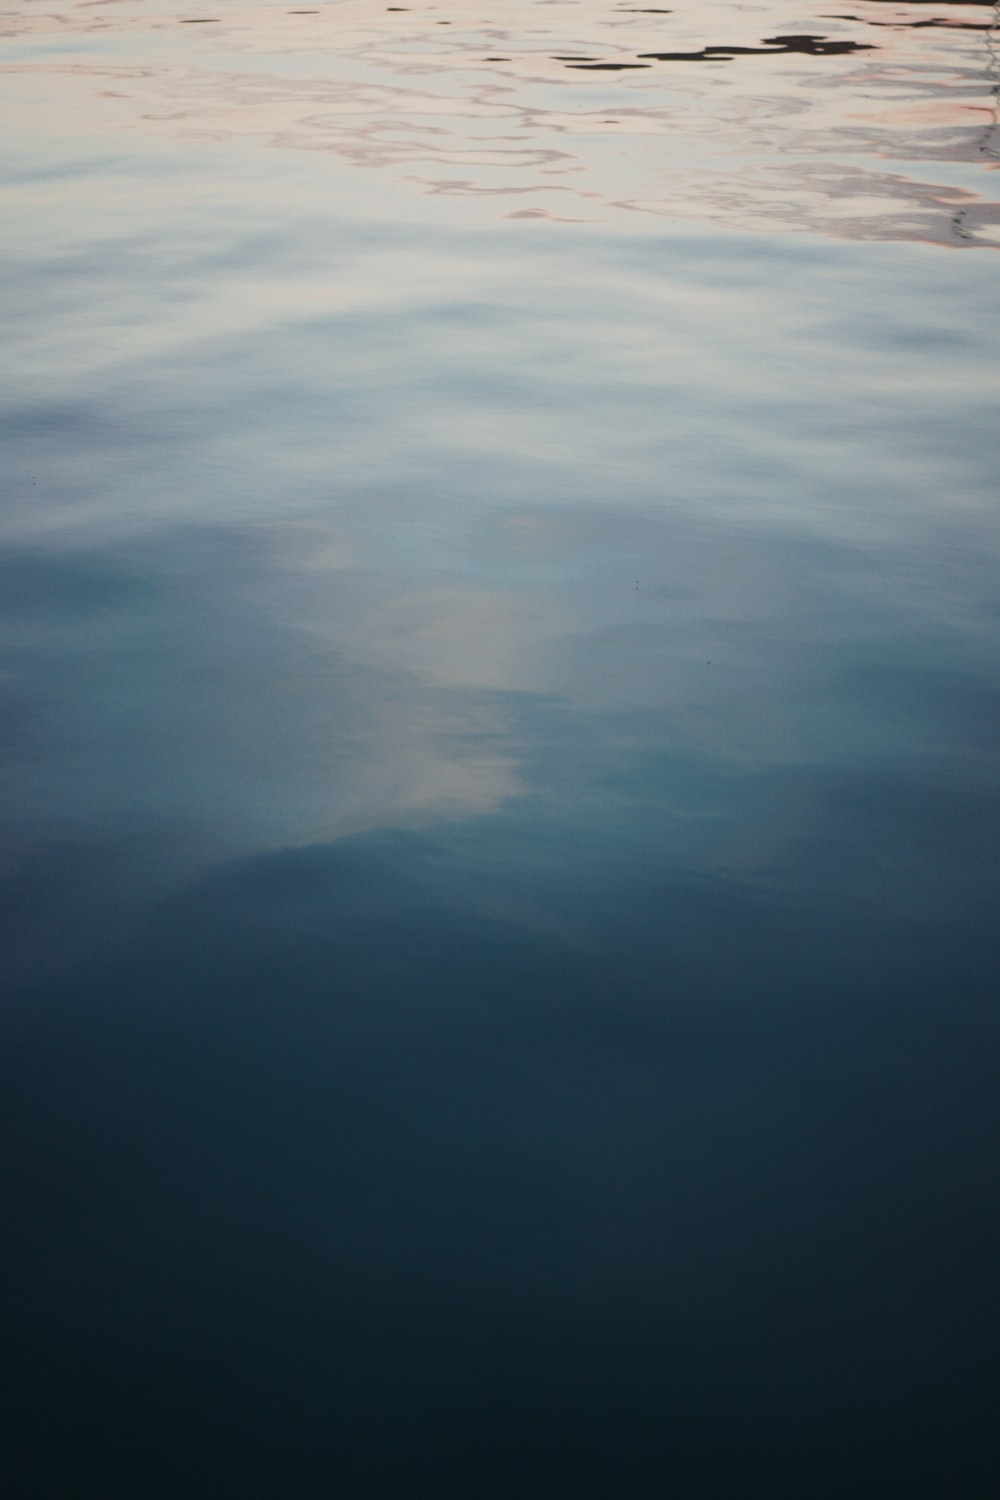 blue and white body of water